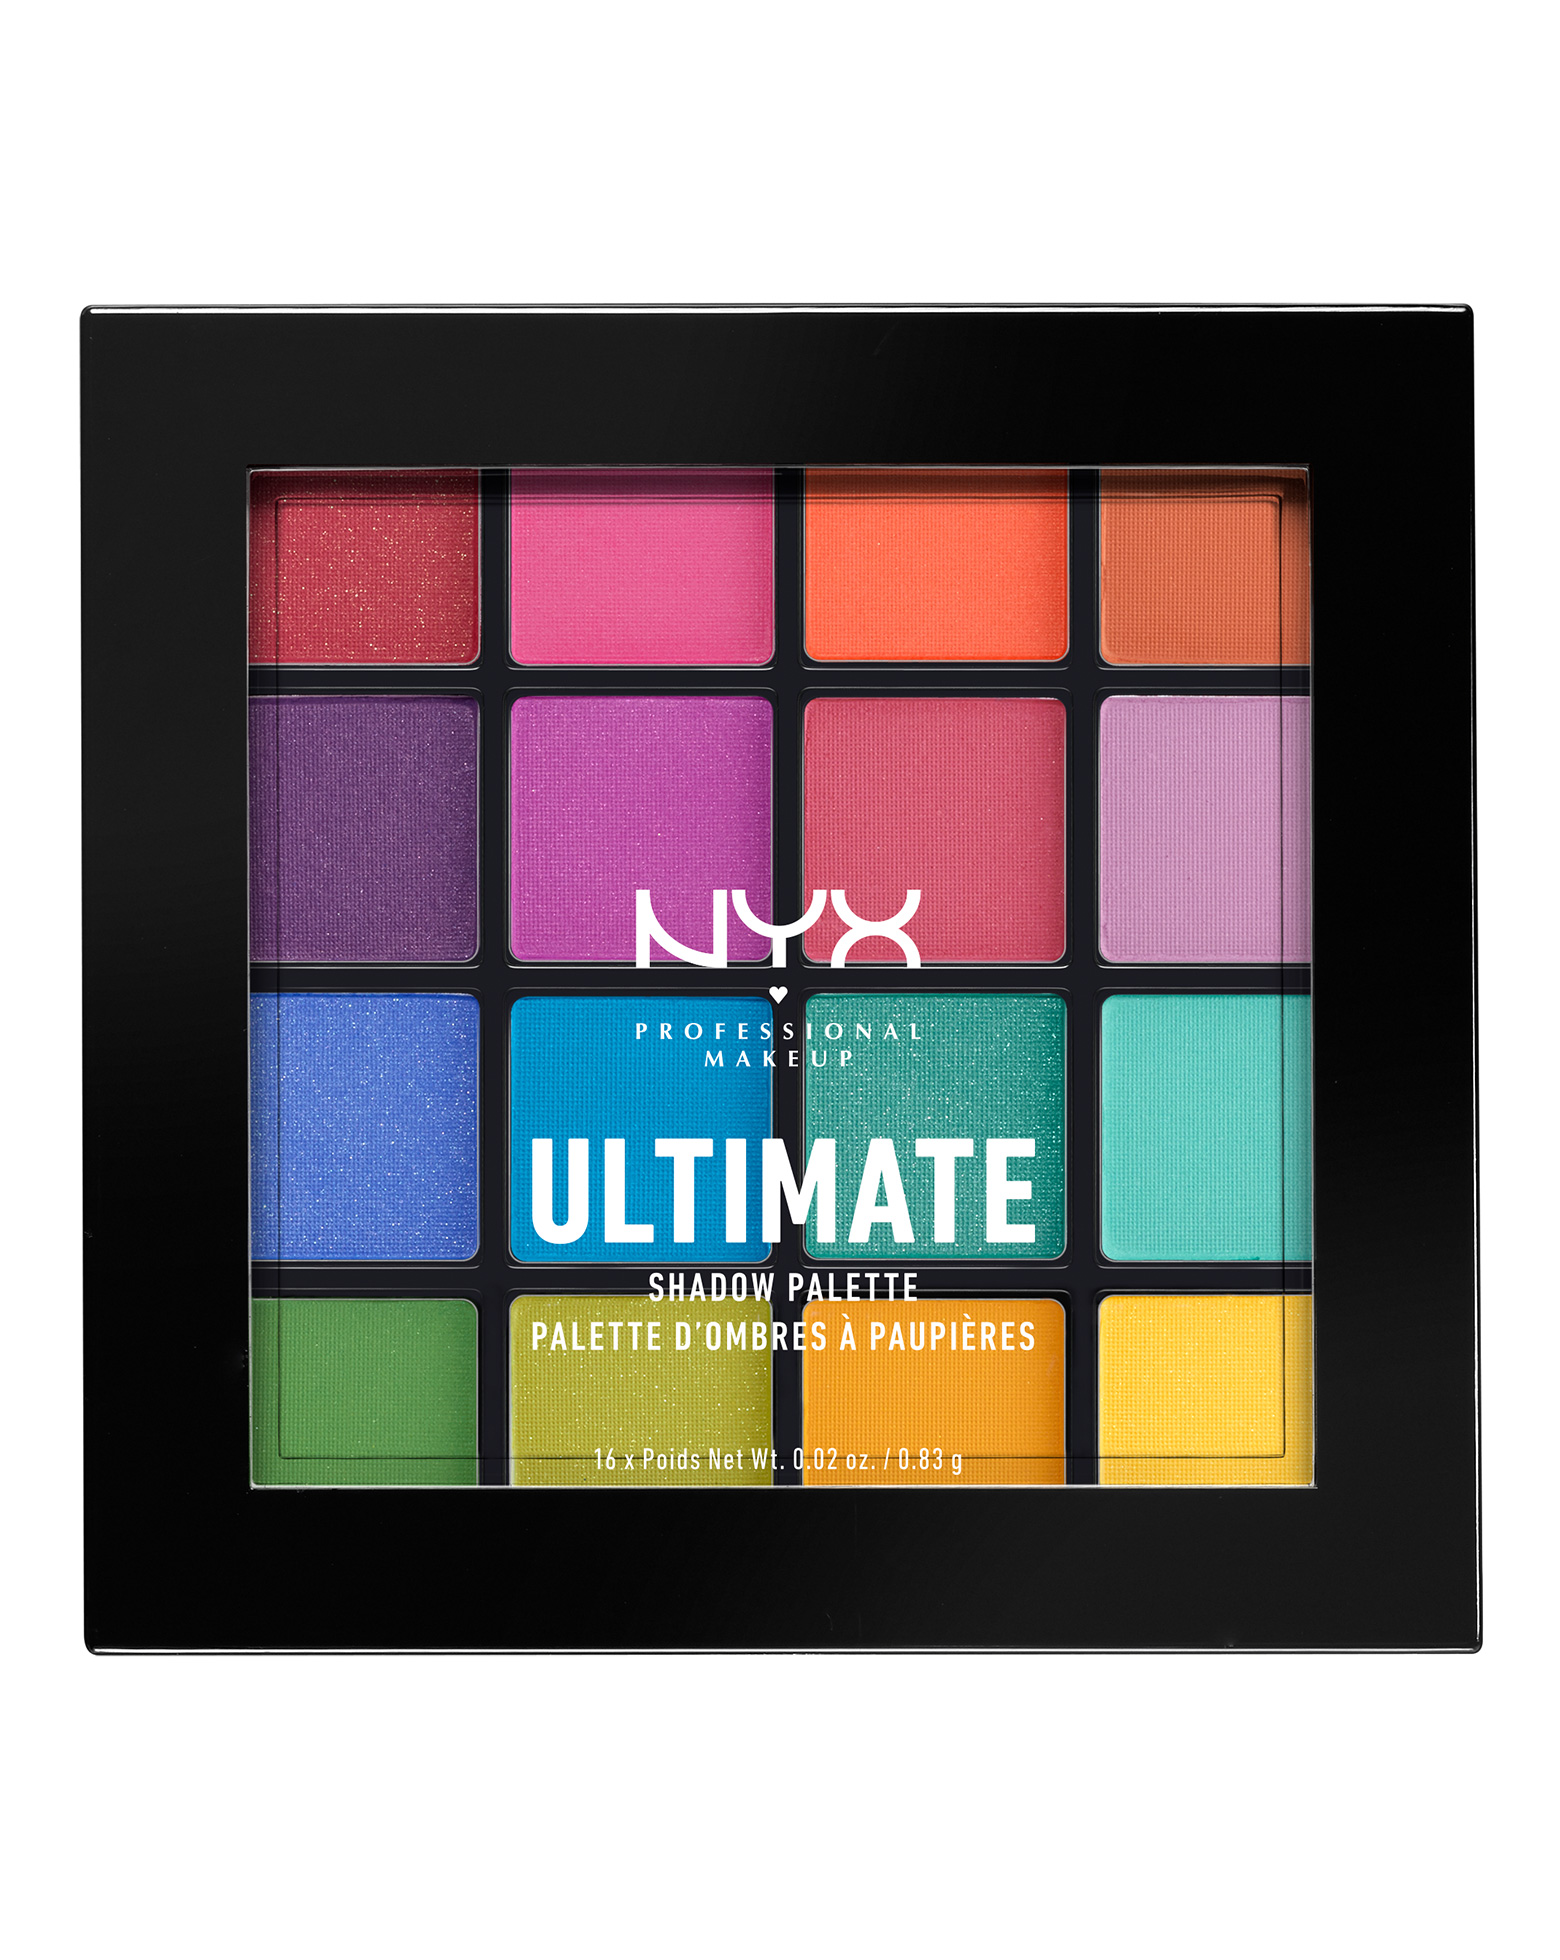 Ultimate Shadow Palette Brights By Nyx Professional Makeup